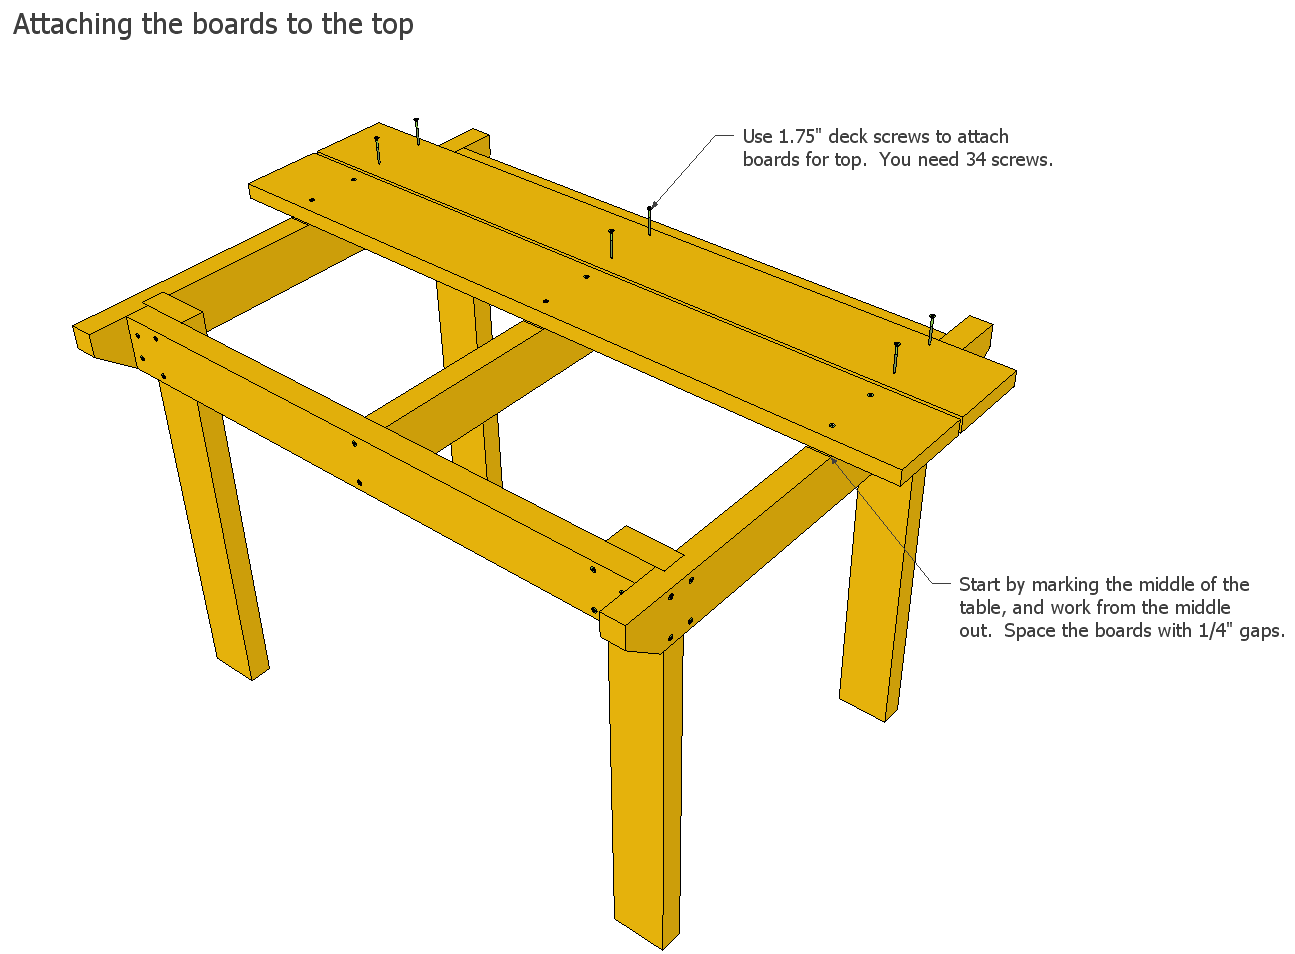 also have the plans in SketchUp of this table that you can download ...